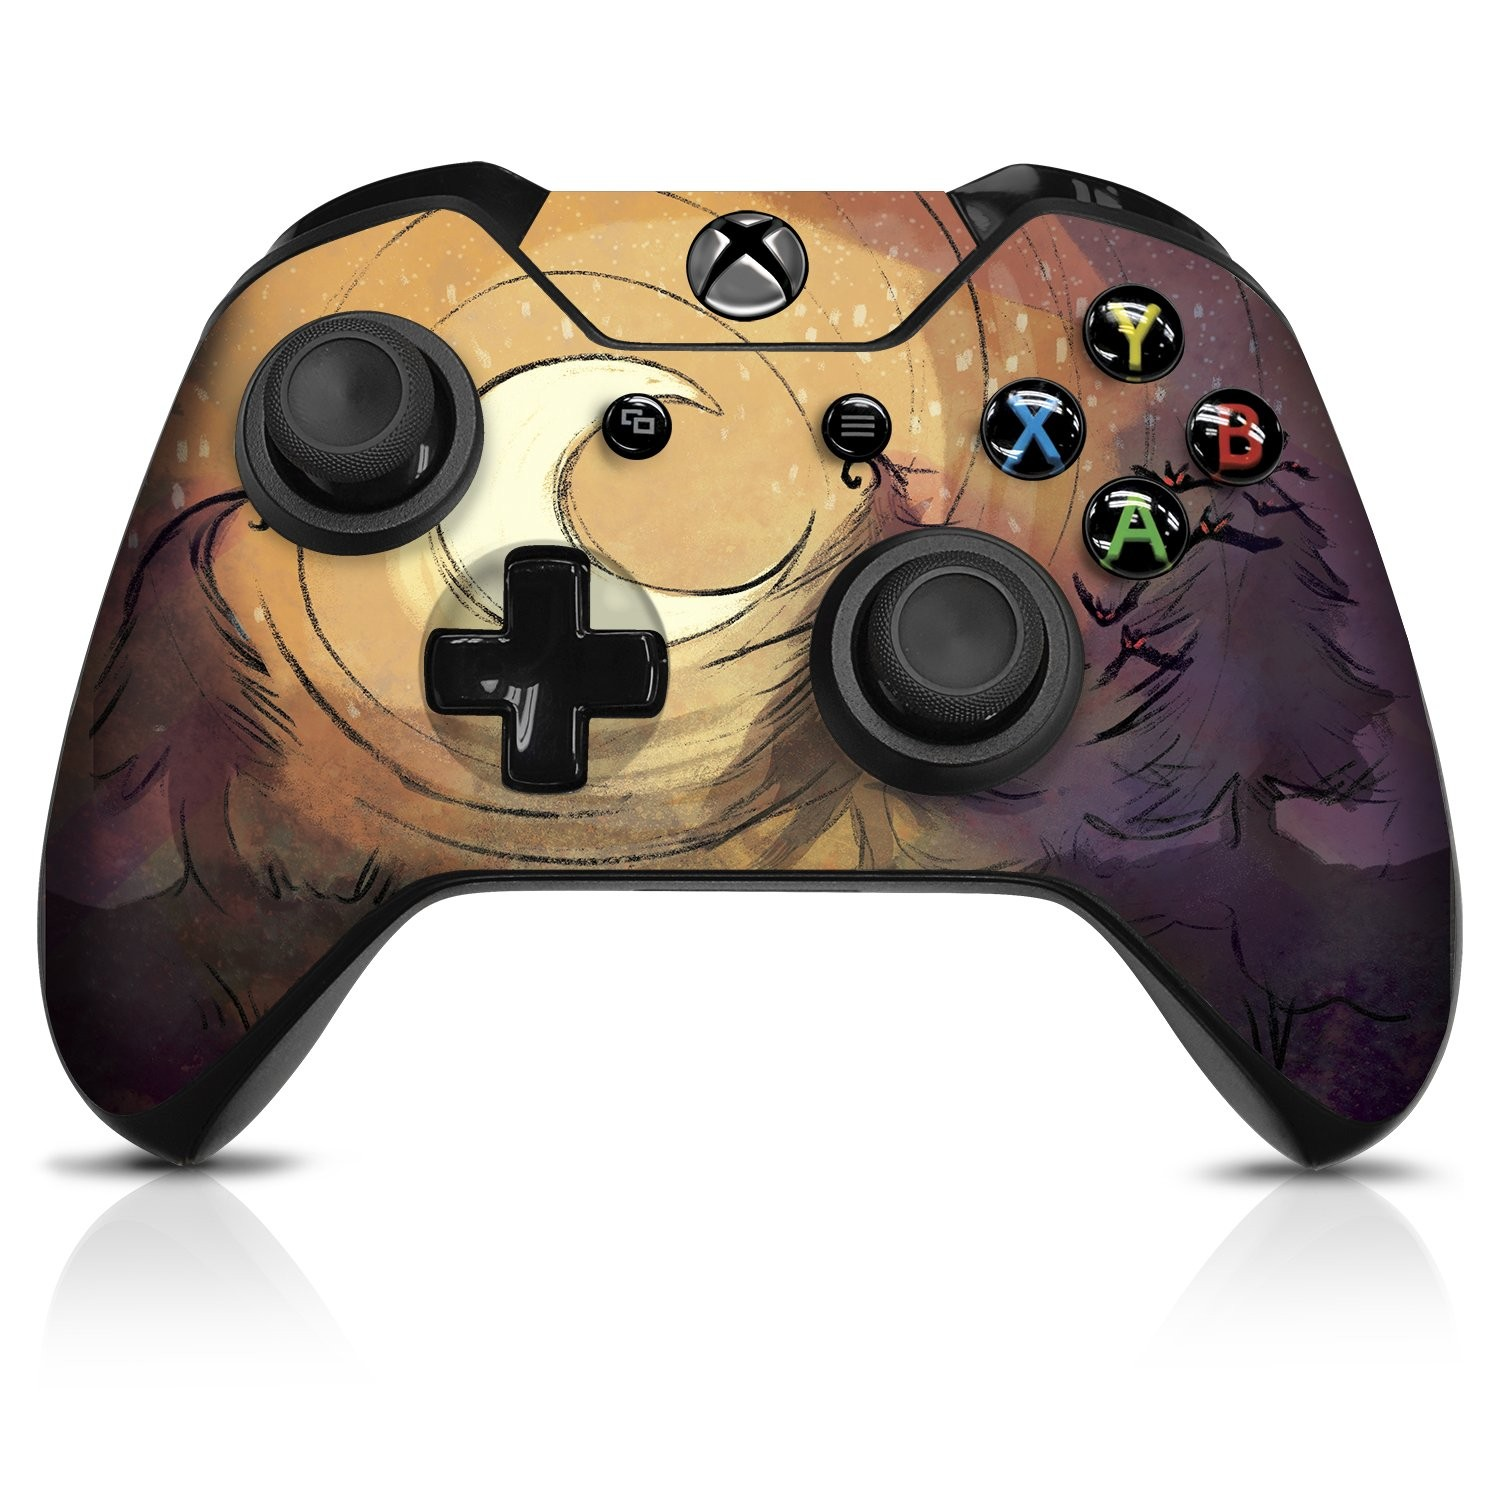 Spooky  Xbox One Controller Skin - Officially Licensed by Xbox - Controller Gear